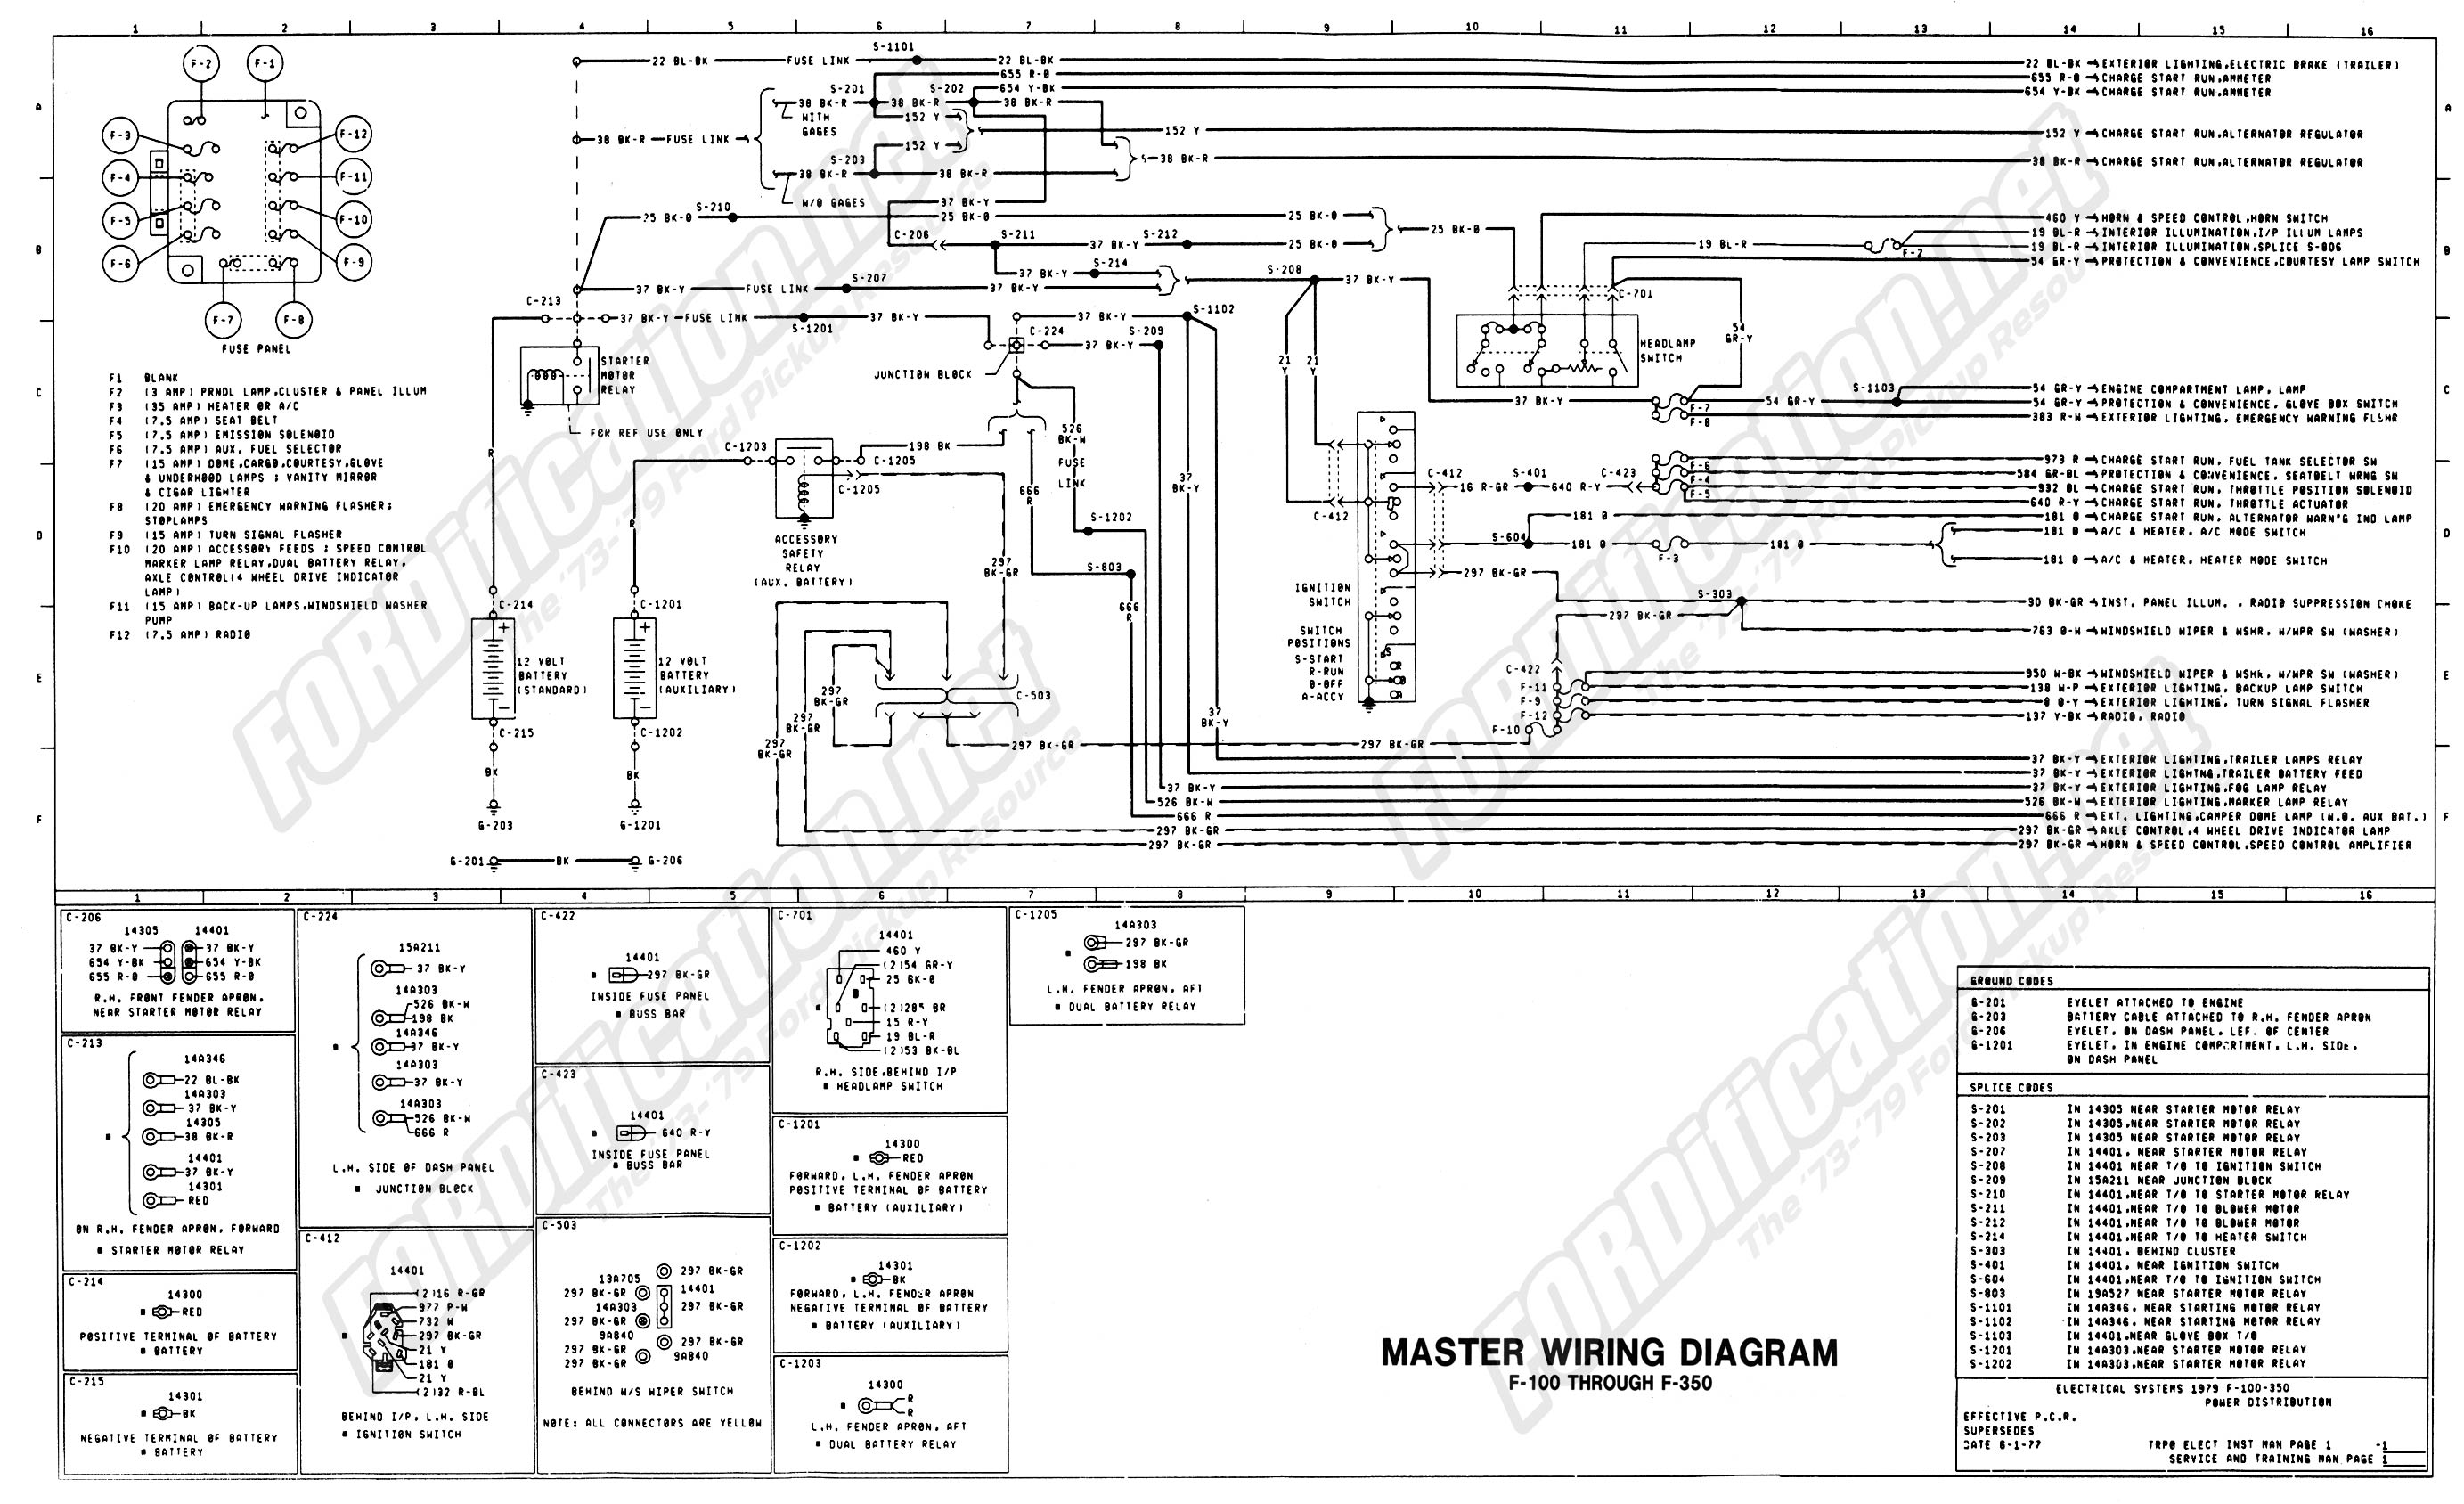 wiring_79master_1of9 1973 1979 ford truck wiring diagrams & schematics fordification net ford truck wiring diagrams free at readyjetset.co